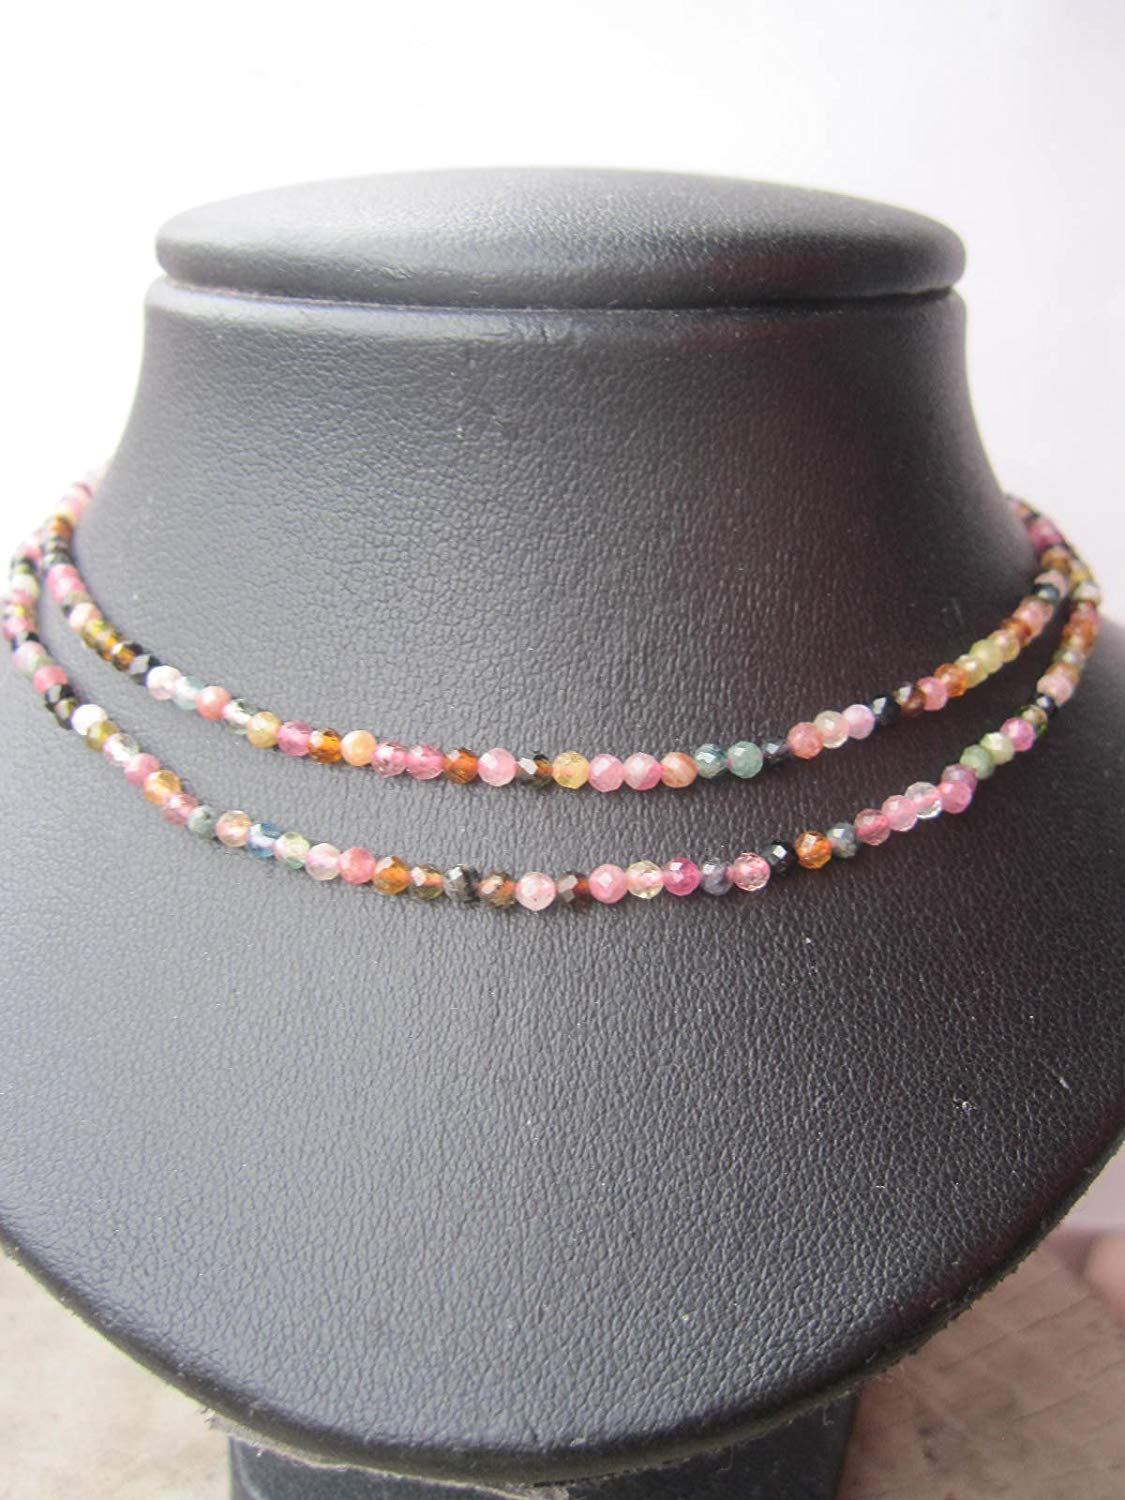 2 mm,Multi Color Double Strand Tourmaline Necklace,October Birthstone Necklace,925 sterling silver 1 inch extender - Size 15,16,17,18, 20 - Custom size